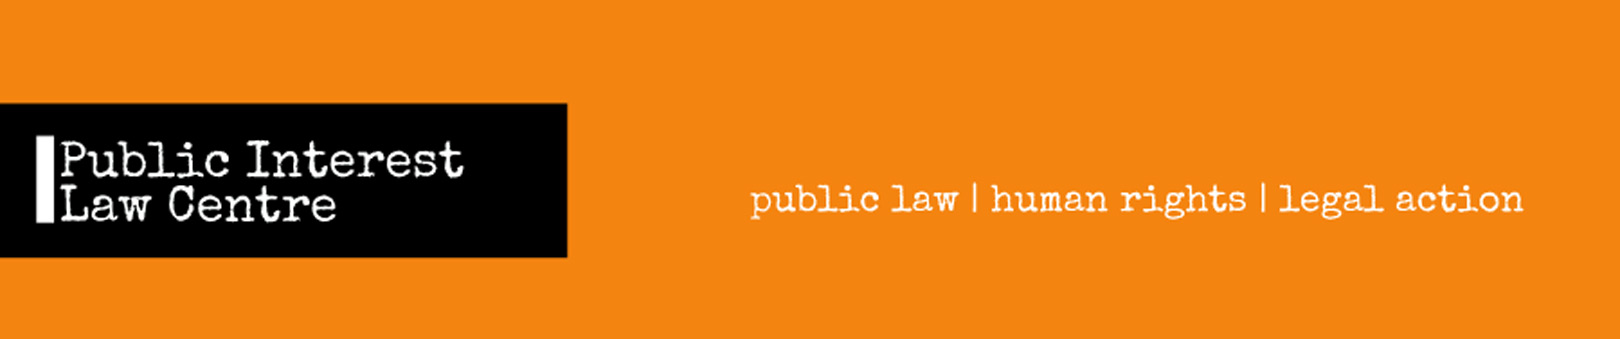 Public Interest Law Centre